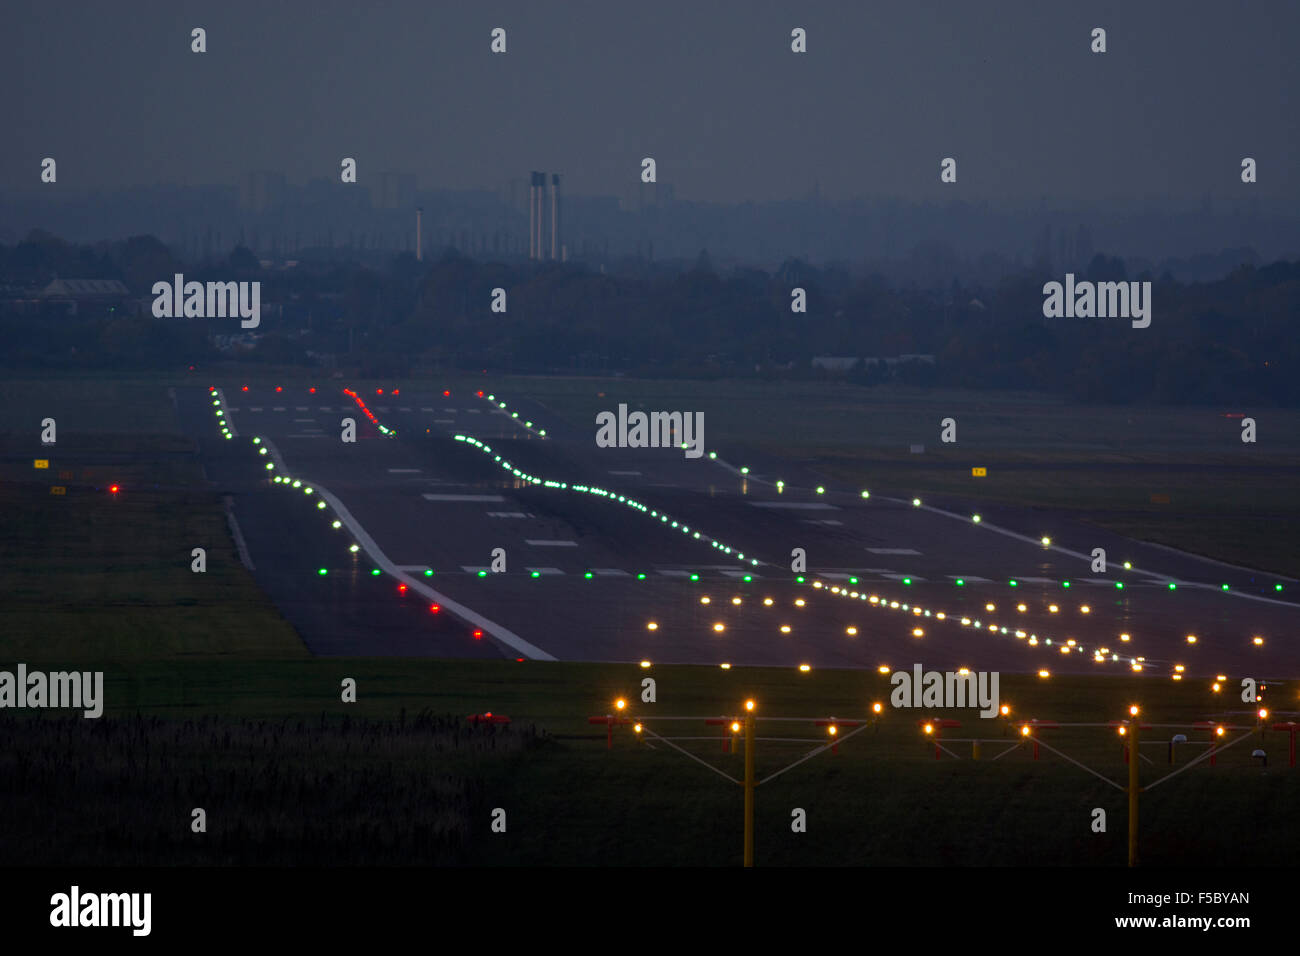 Attractive Runway Lights At Birmingham Airport, UK Idea